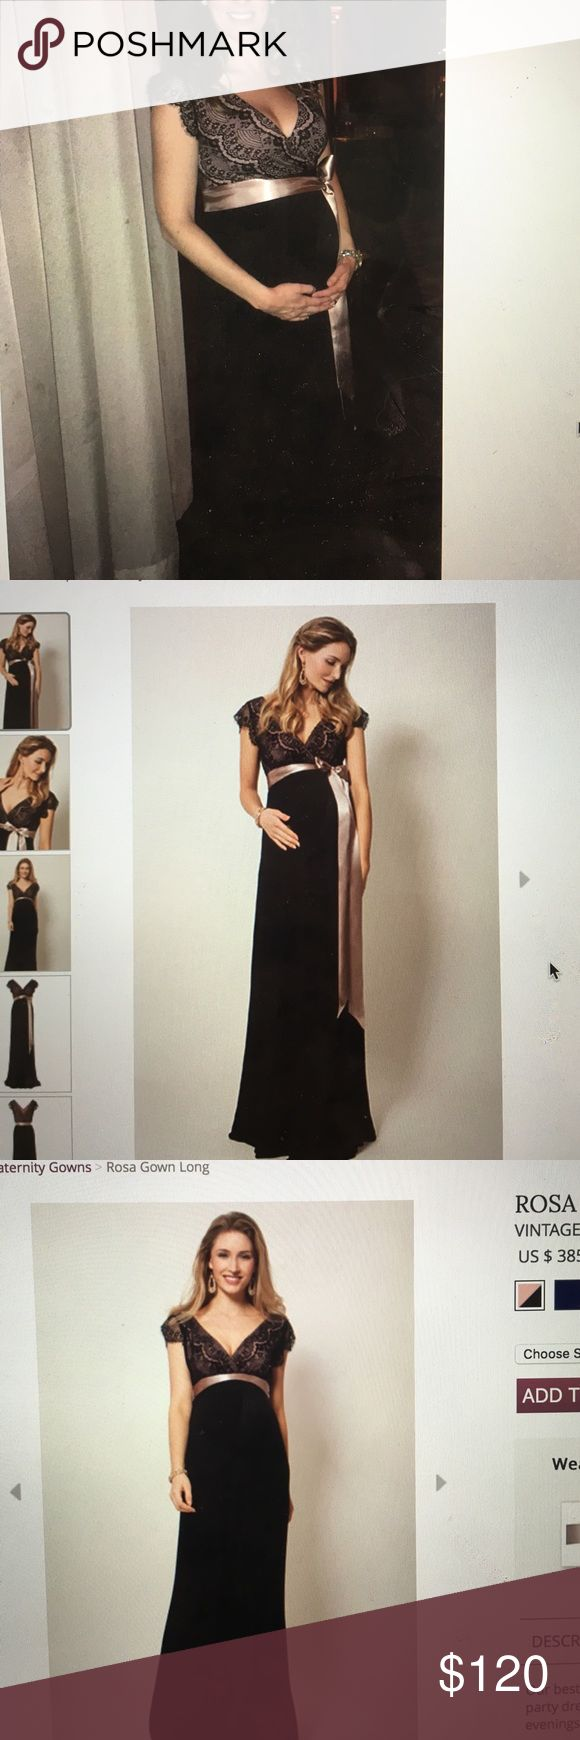 Tiffany Rose Maternity formal dress Rosa Gown Long Rosa Gown Long, in Black and Vintage Blush colorway. Tiffany Rose brand. Excellent used condition worn twice (Jan and Feb 2017 once for a wedding and once for an auction) and dry cleaned! Would work in warm weather- super comfortable for a formal maternity gown! Love it, but it was expensive (I paid about $300 because I got it on sale), just looking to recoup a little and pass along to another mama in need of a hot dress! I wear a 2-4 pre…